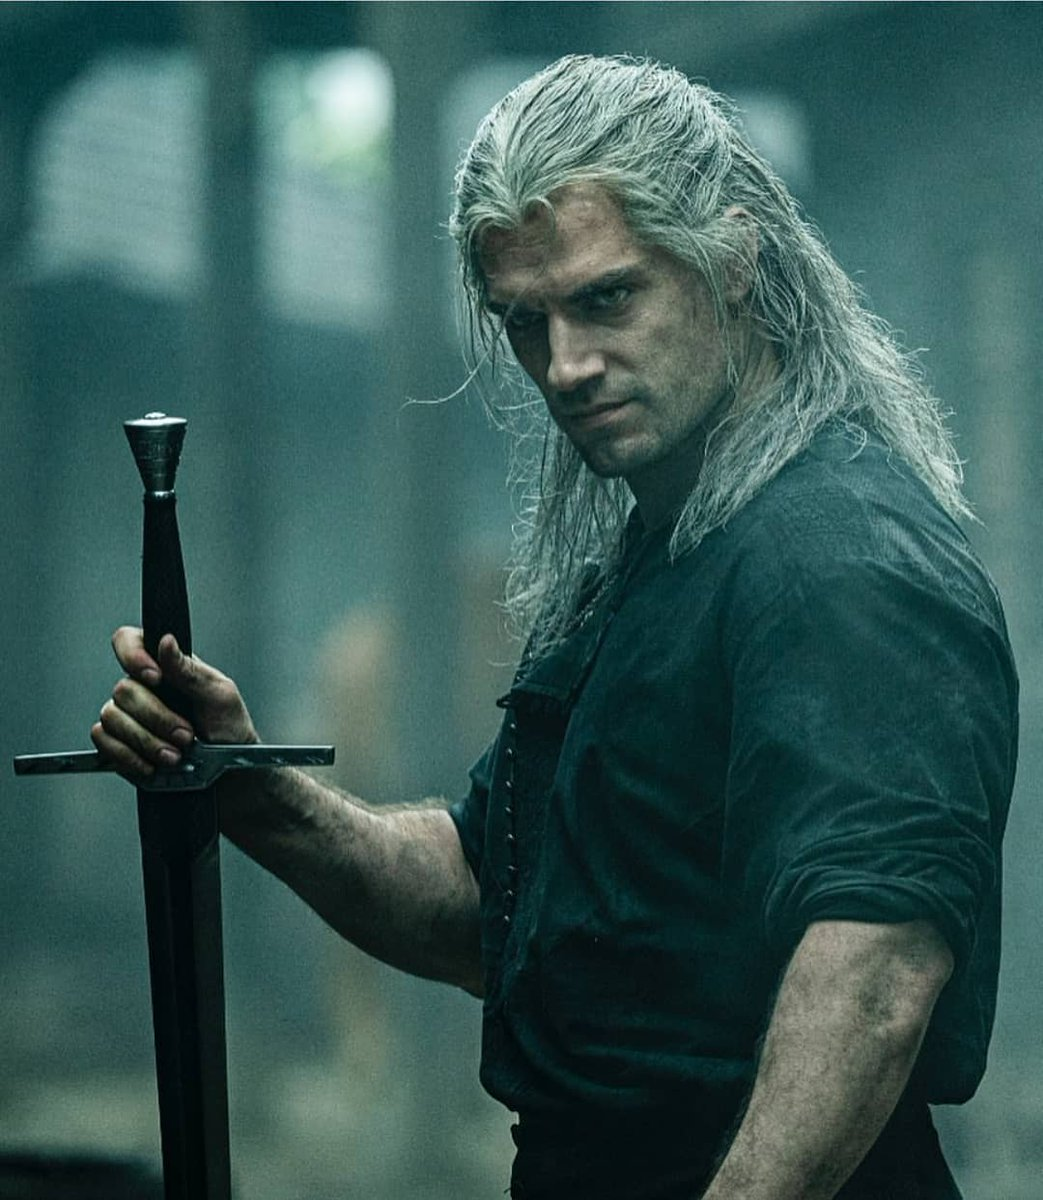 THE WITCHER | MAIN TRAILER | NETFLIX | HENRY CAVILL